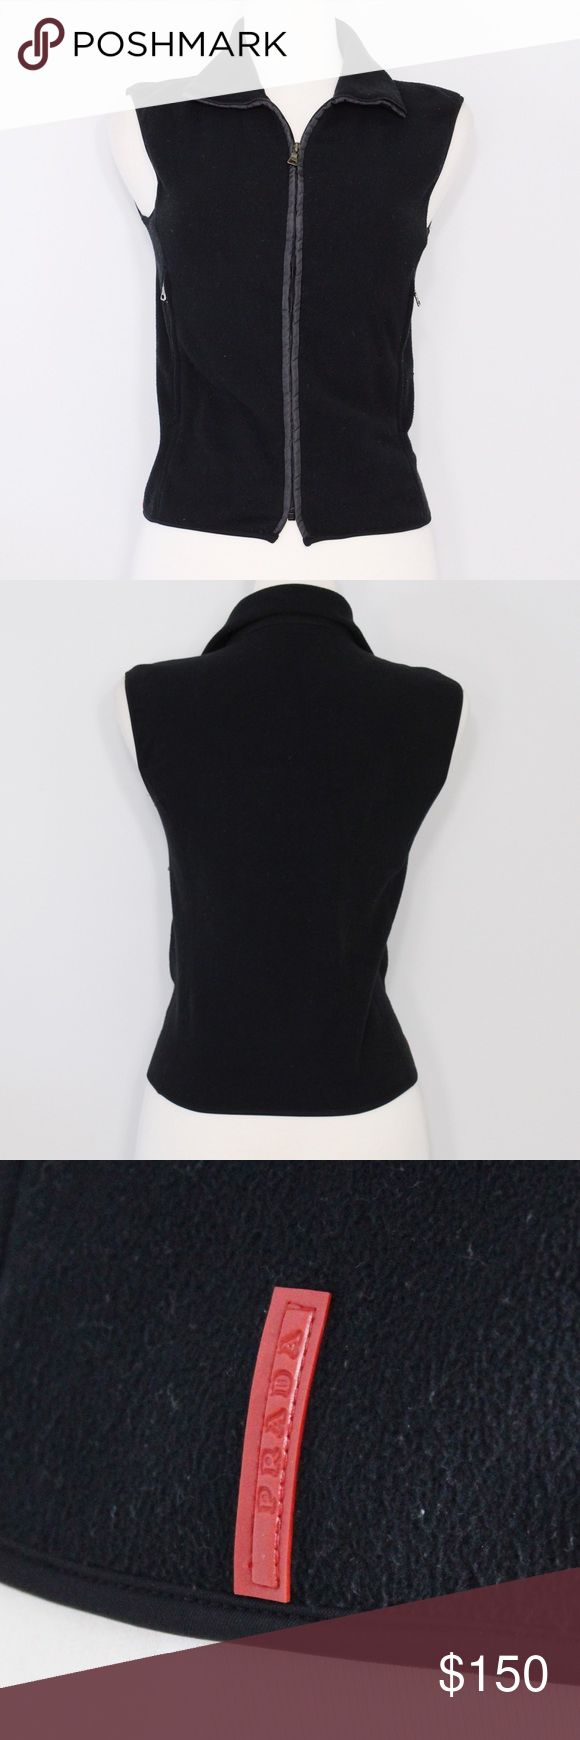 """PRADA Black Fleece Sport Vest Bust: 17"""" (laying flat, stretchy back)  Length: 20"""" (shoulder to hem)   A sleek, sporty vest in great condition! Zipper closure. Red """"PRADA"""" logo on left side. Functional zipper pockets. No holes or stains. Comes from a smoke free environment.  👌🏻Offers welcome through offer button 📦Bundles welcome ❌NO trades, please. ⚡️Same/Next day shipping Prada Jackets & Coats Vests"""